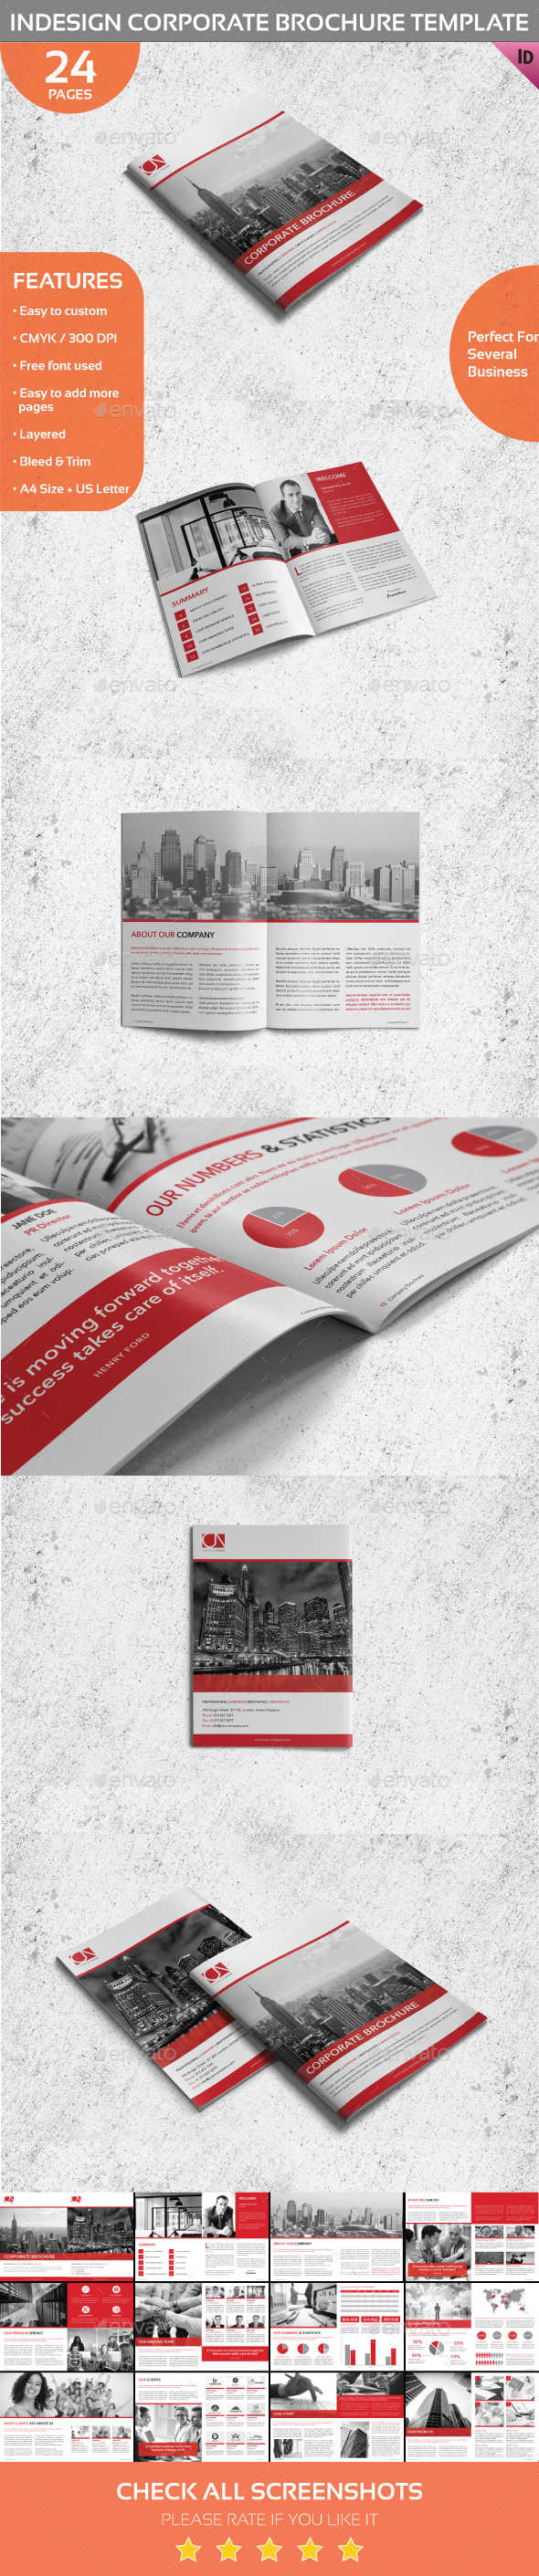 Indesign Corporate Brochure Template - Corporate Brochures